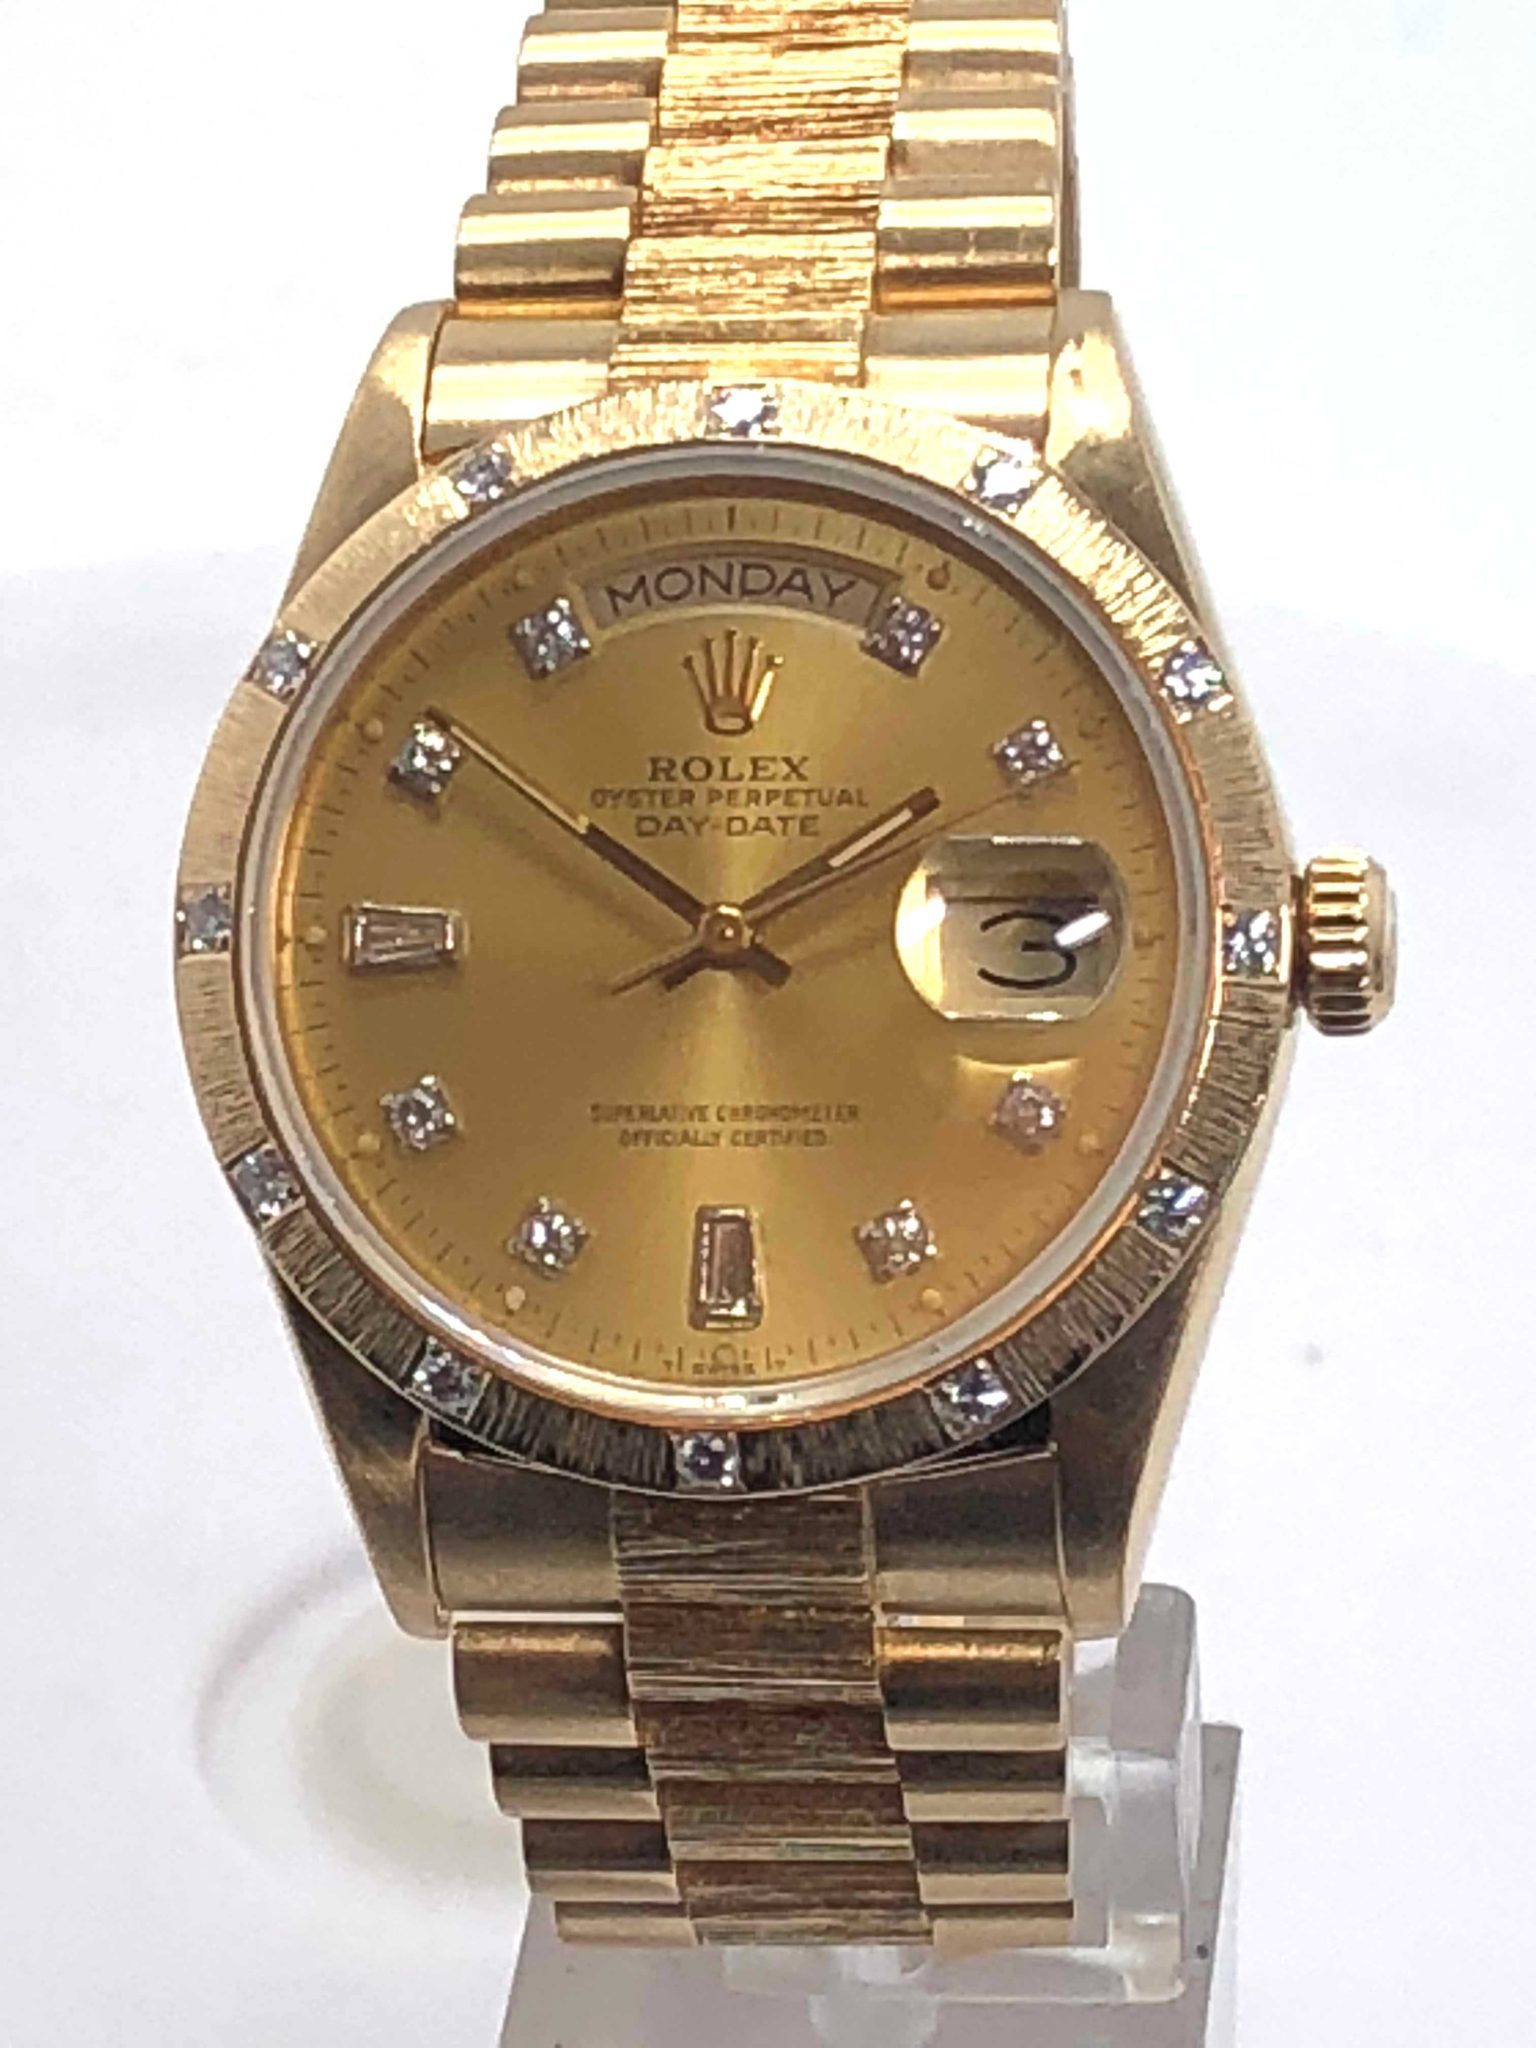 Rolex Oyster Perpetual Day-Date MODEL # 18108